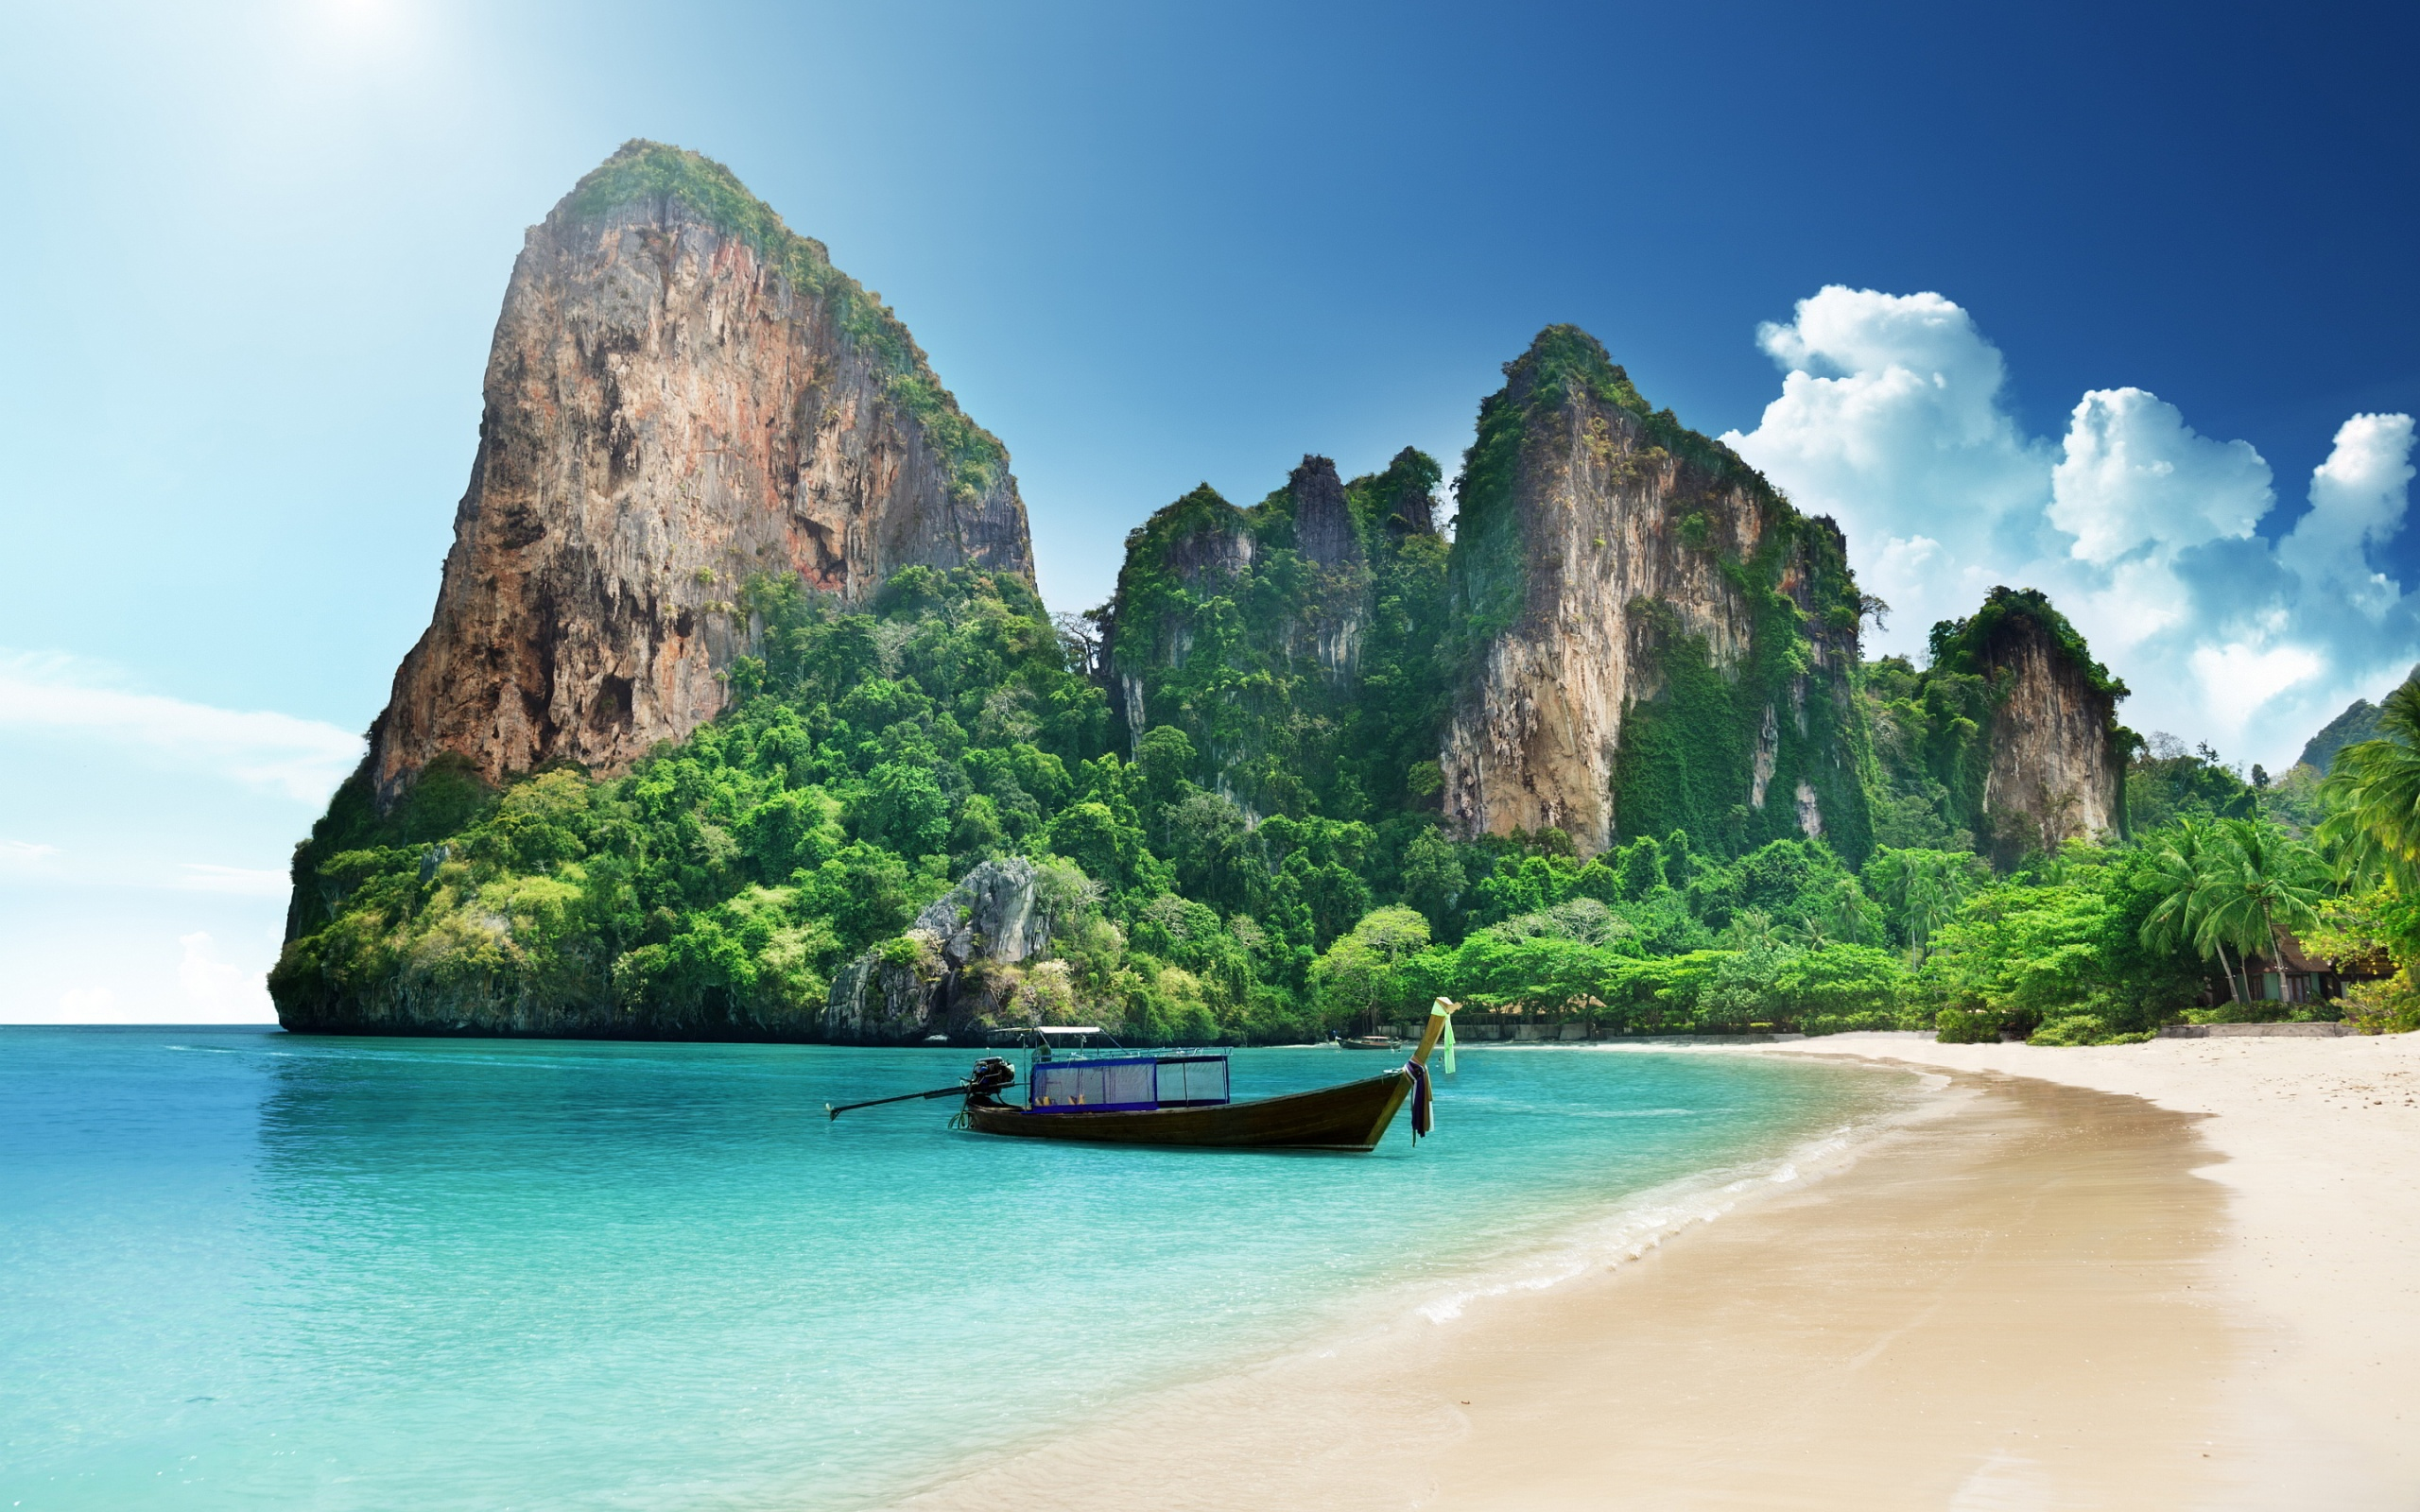 2560x1080 Thai Beach Resolution Hd 4k Wallpapers Images Published October